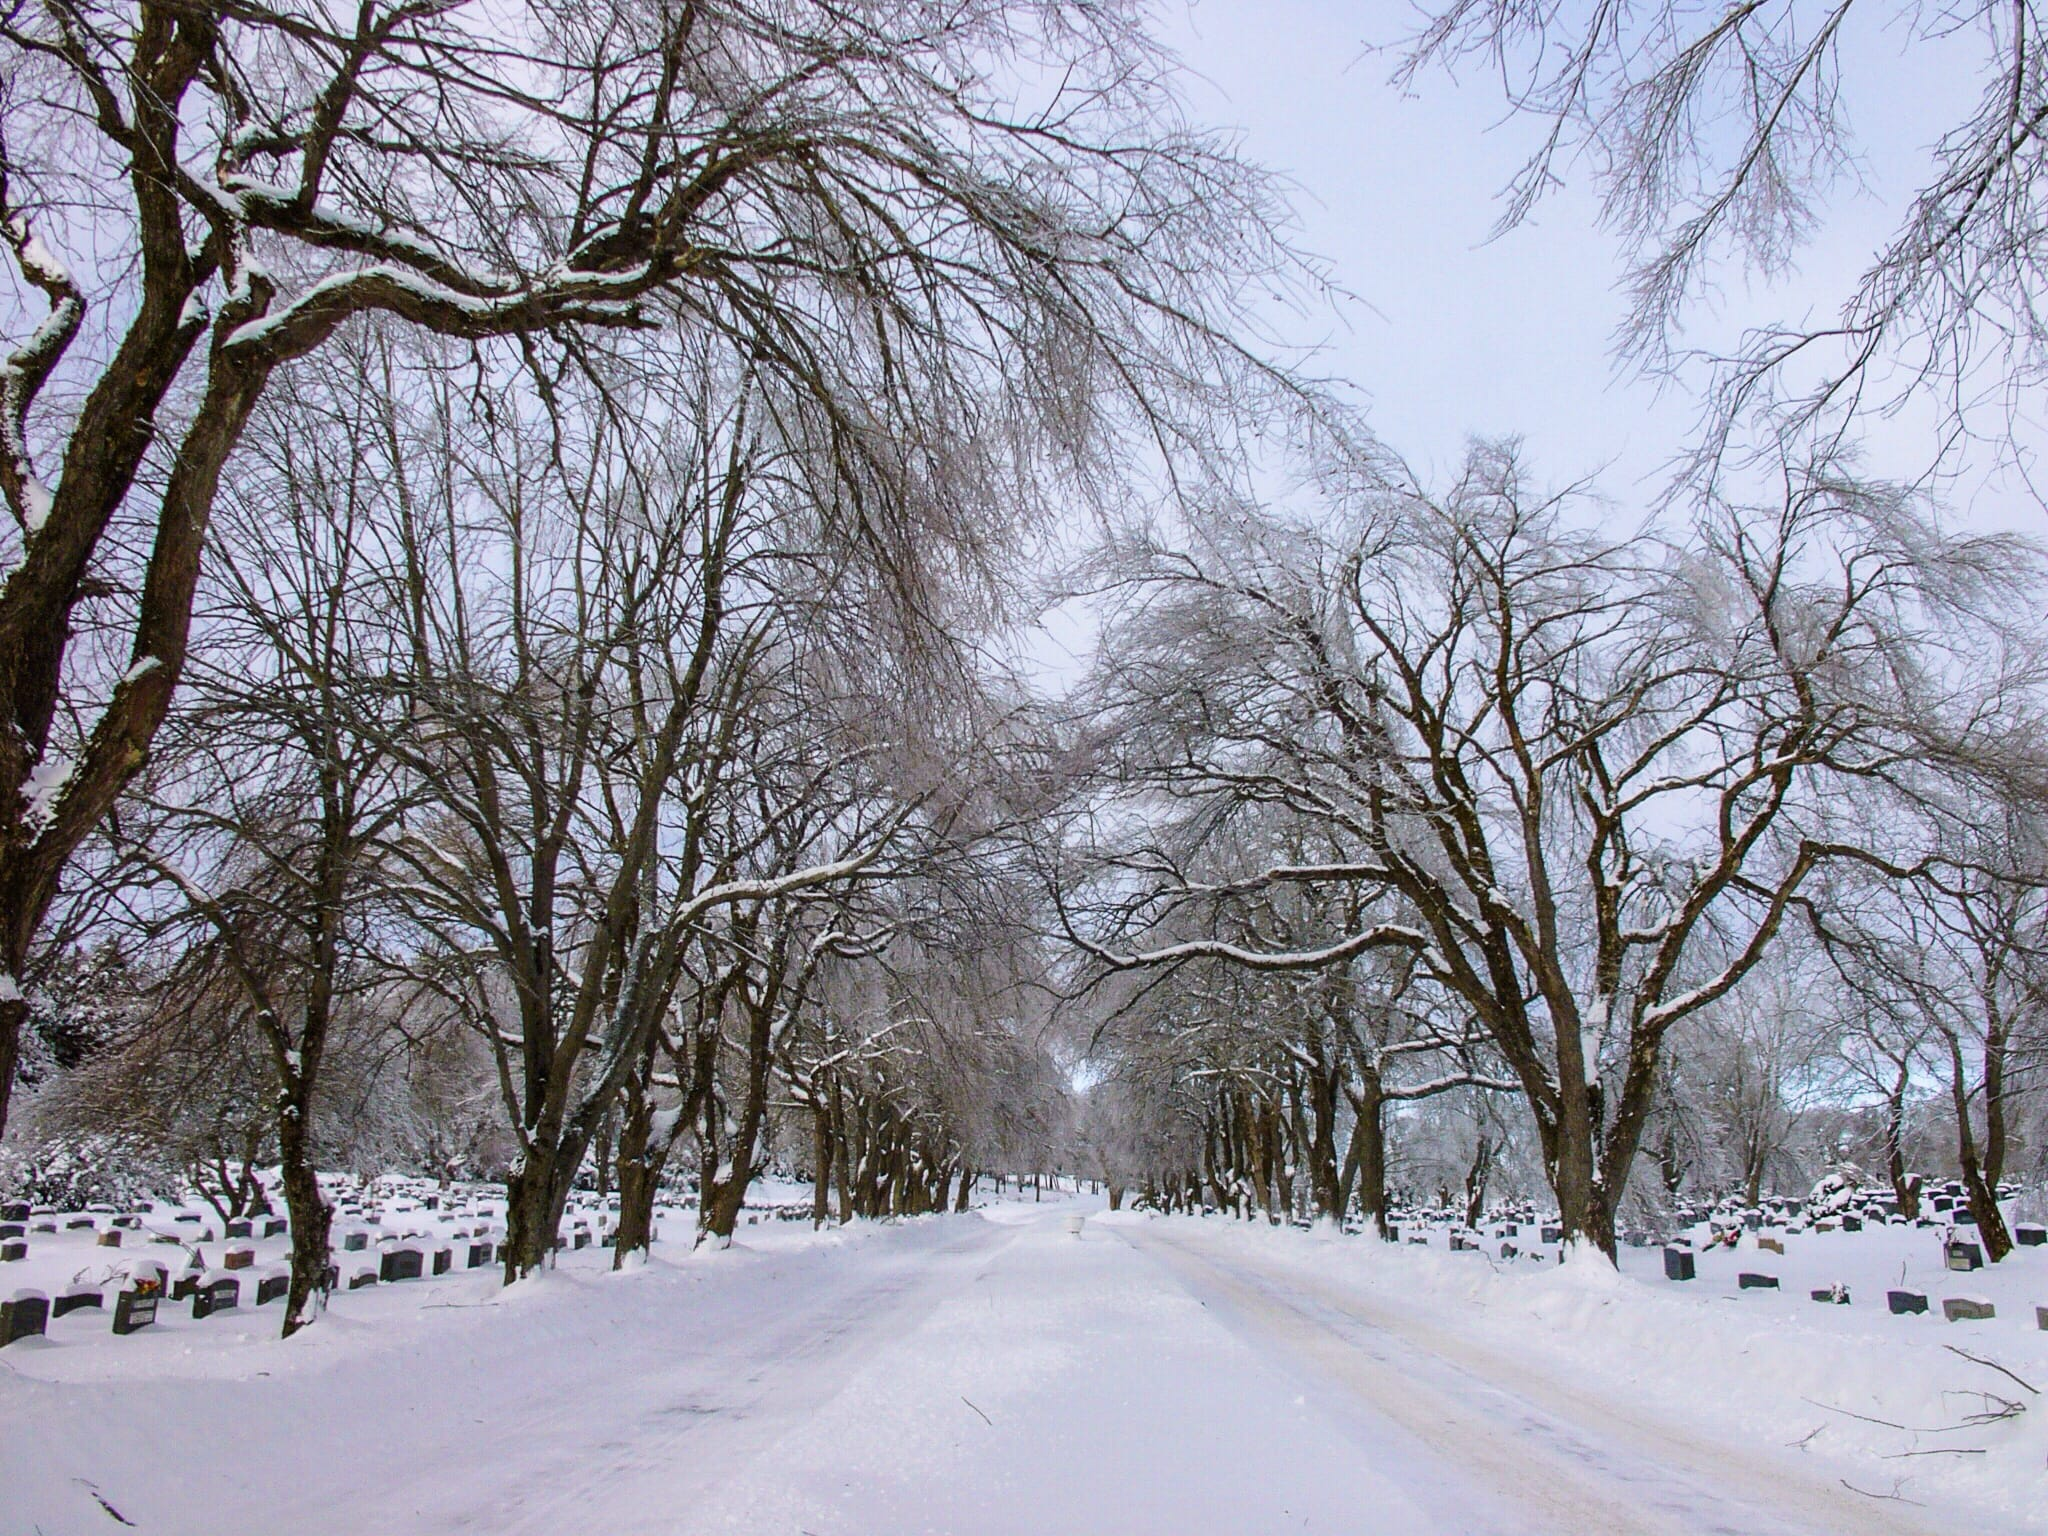 A photograph depicting Winter Trees at Cemetery Saint John